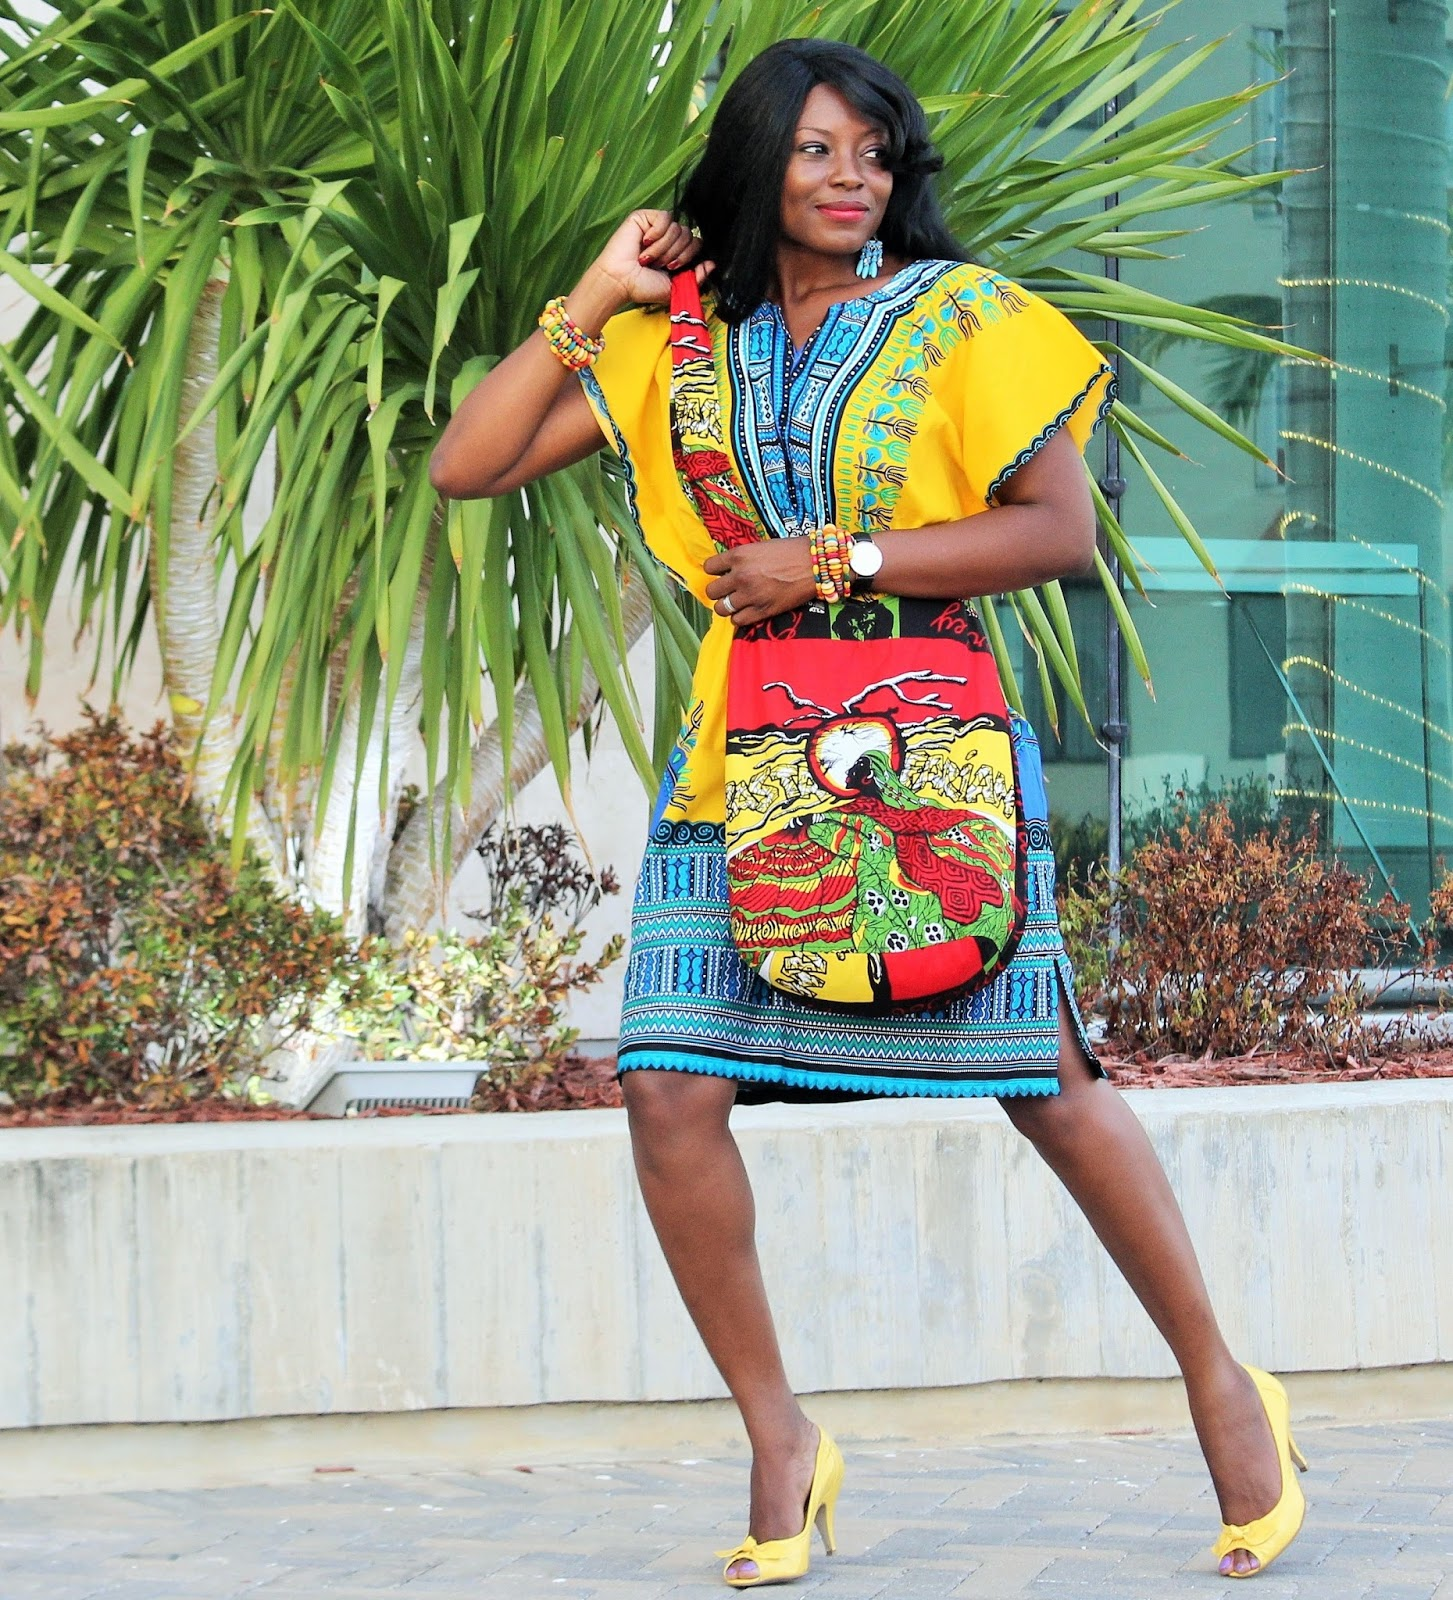 PRINT AND PATTERN MIX: INSPRED BY A DASHIKI DRESS